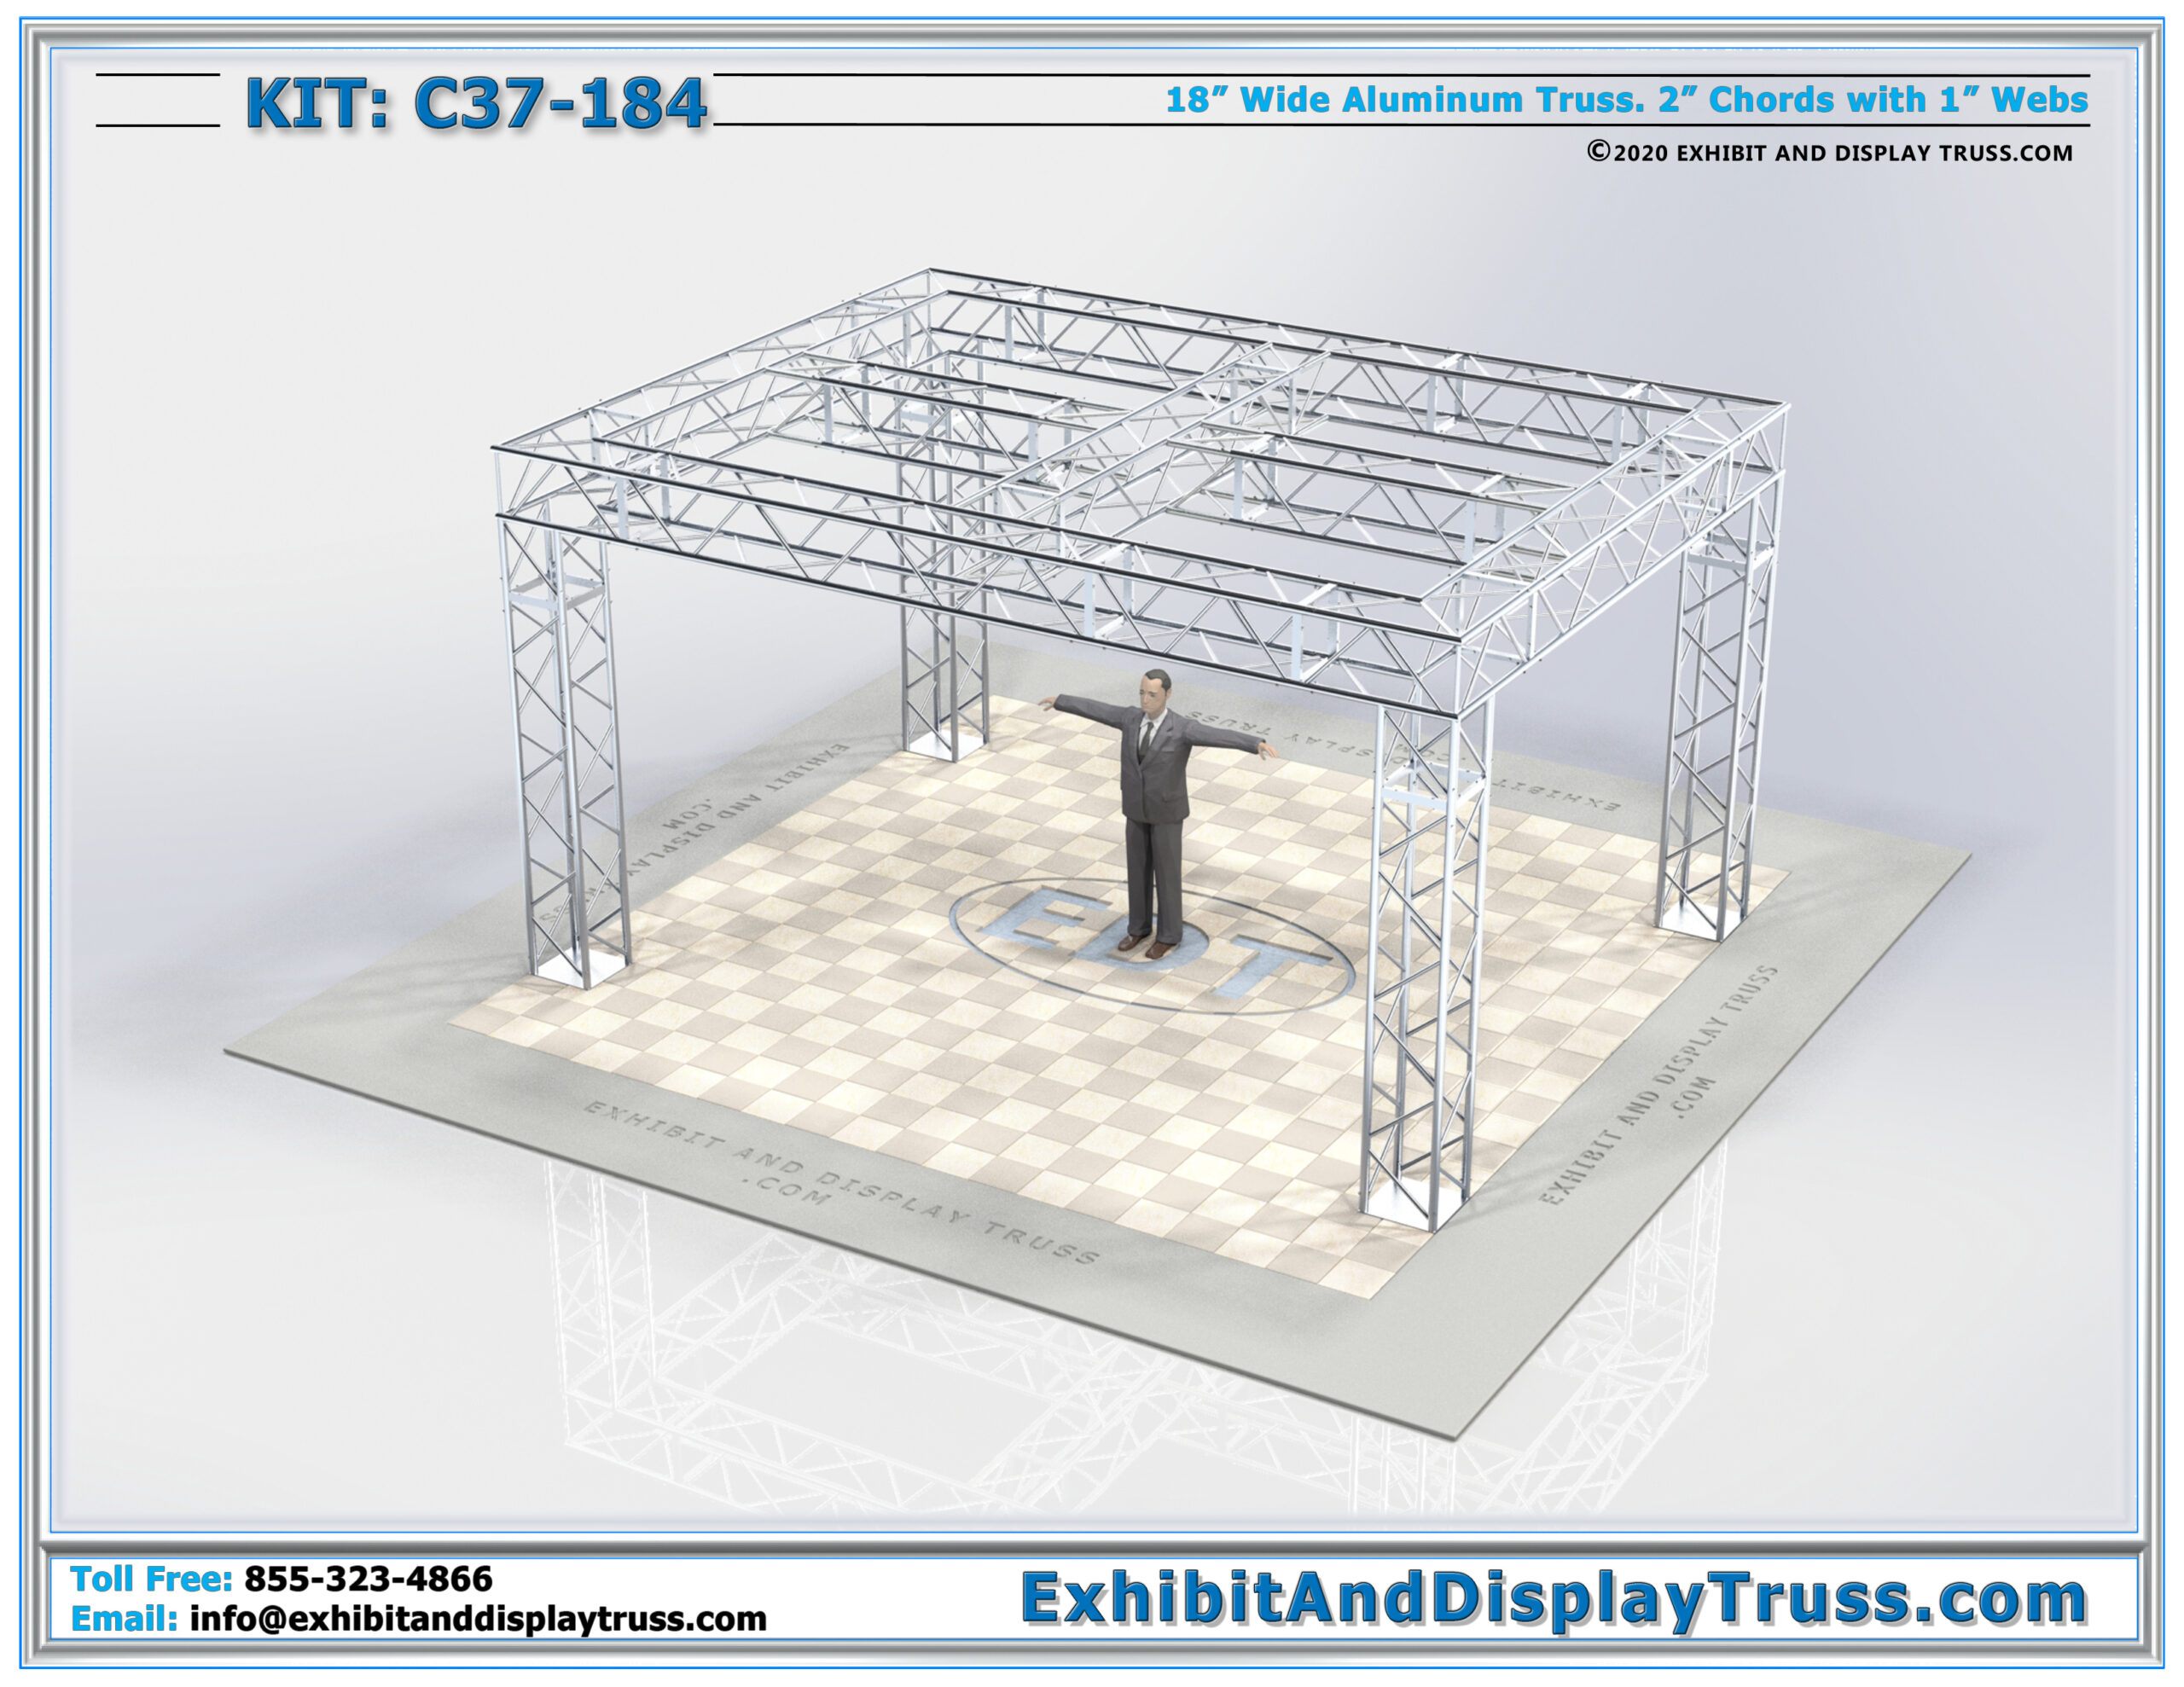 Kit: C37-184 / Heavy Duty Truss System and Trade Show Exhibit Display